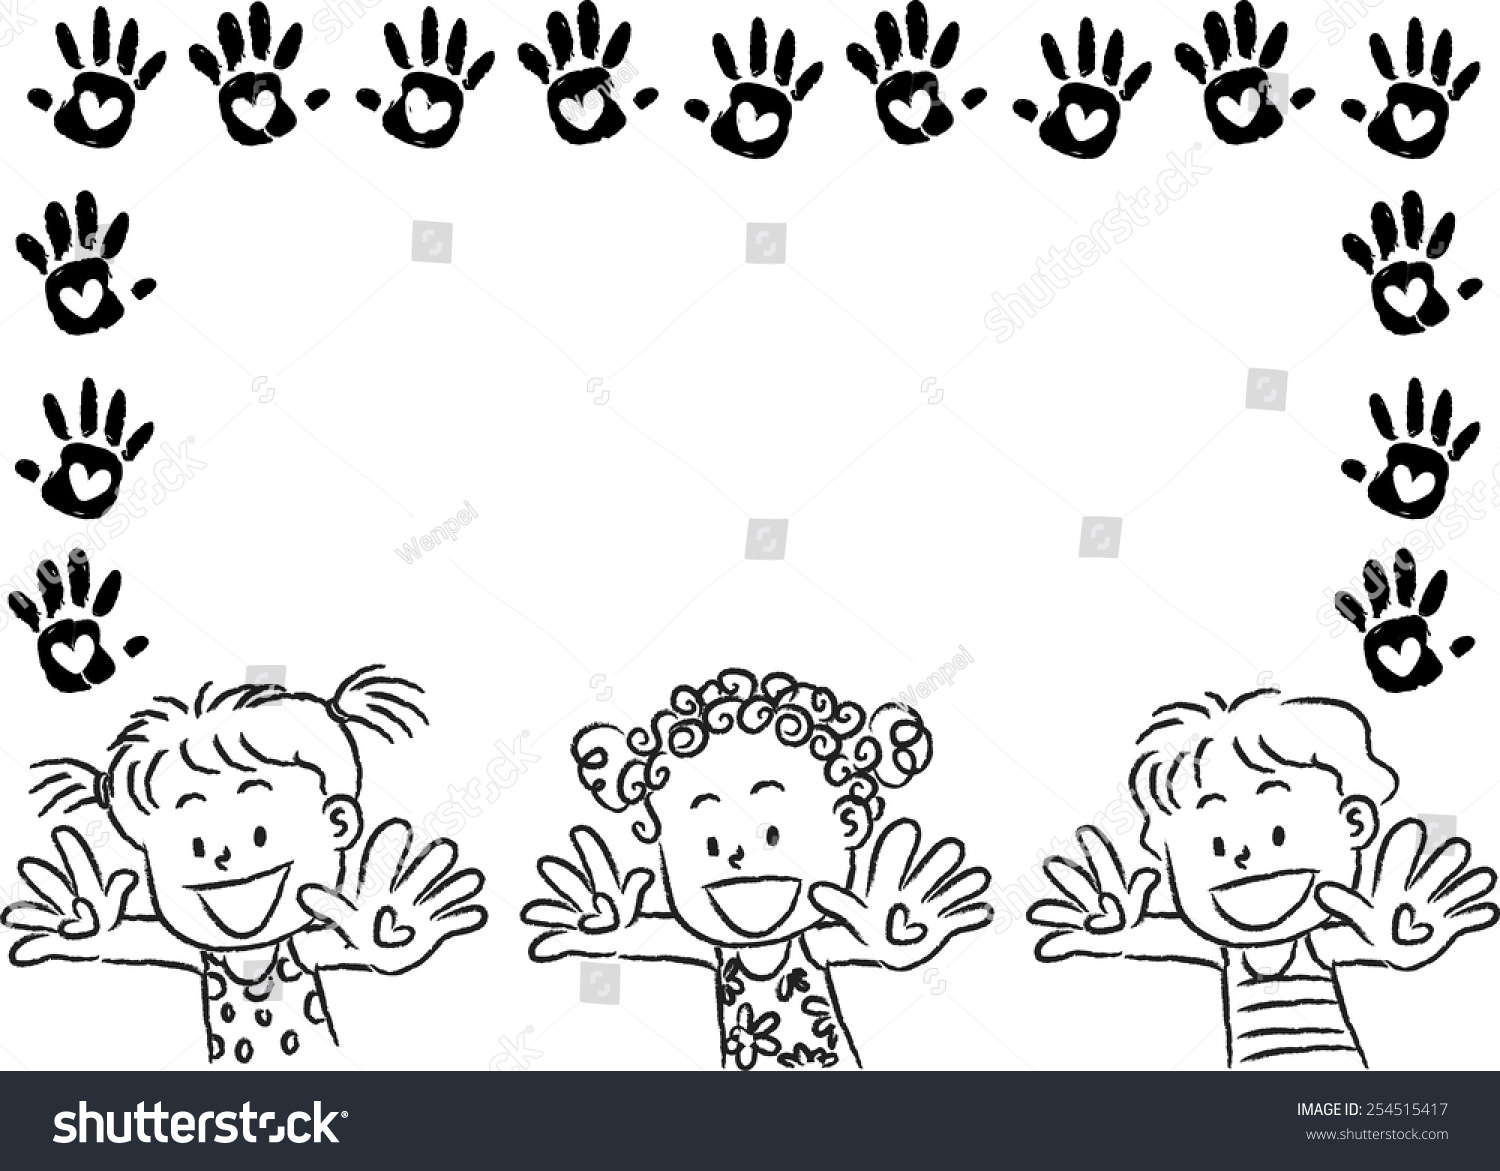 kids with hand print border frame stock vector 254515417